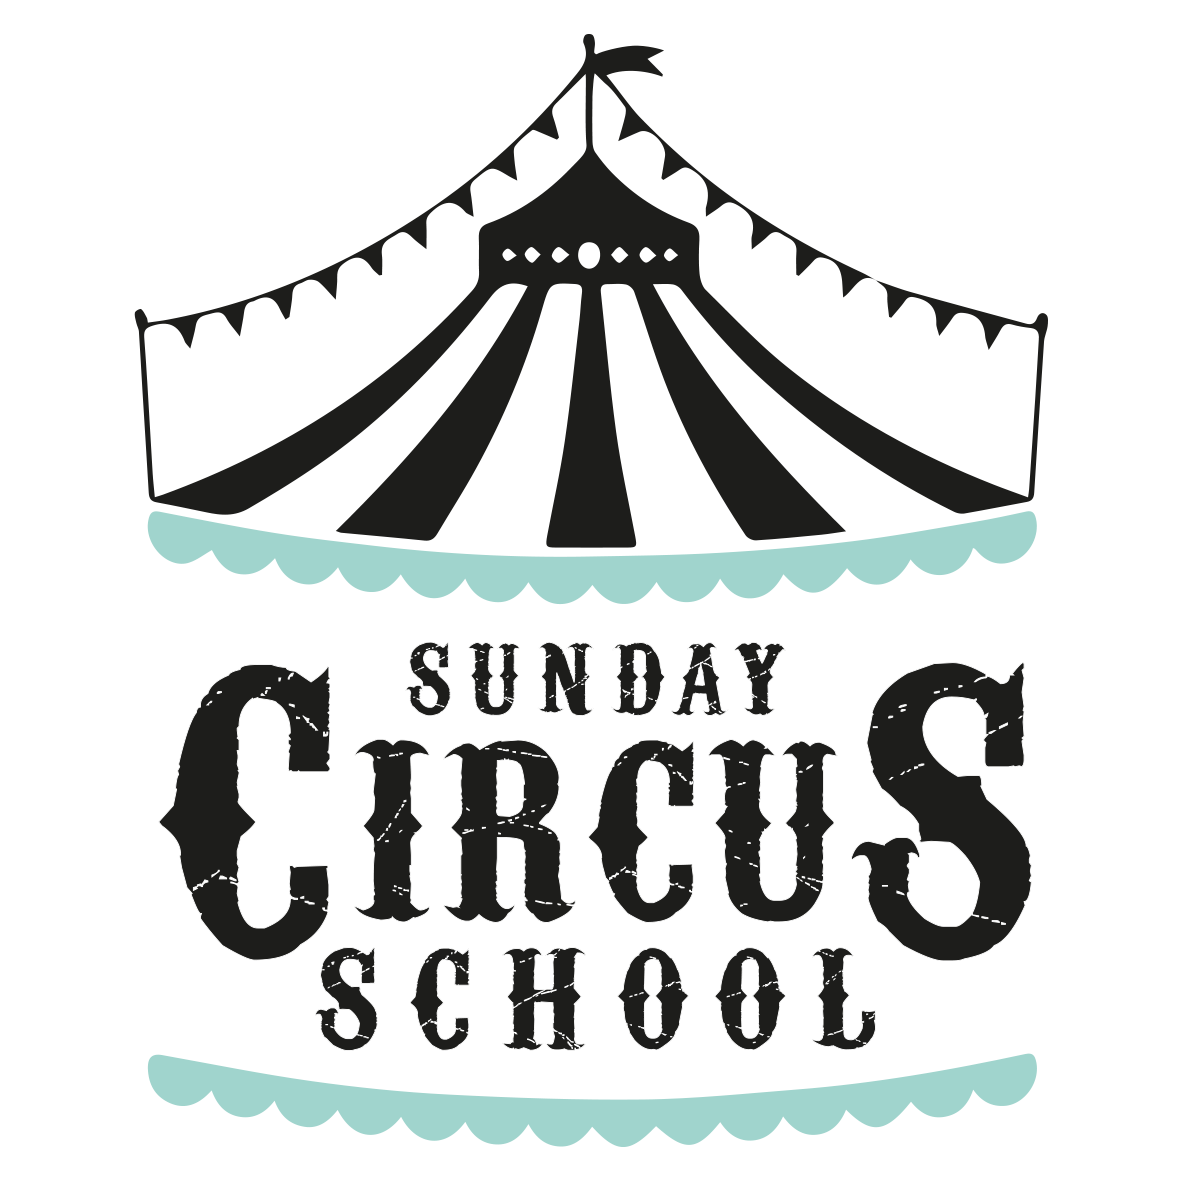 Sunday Circus School